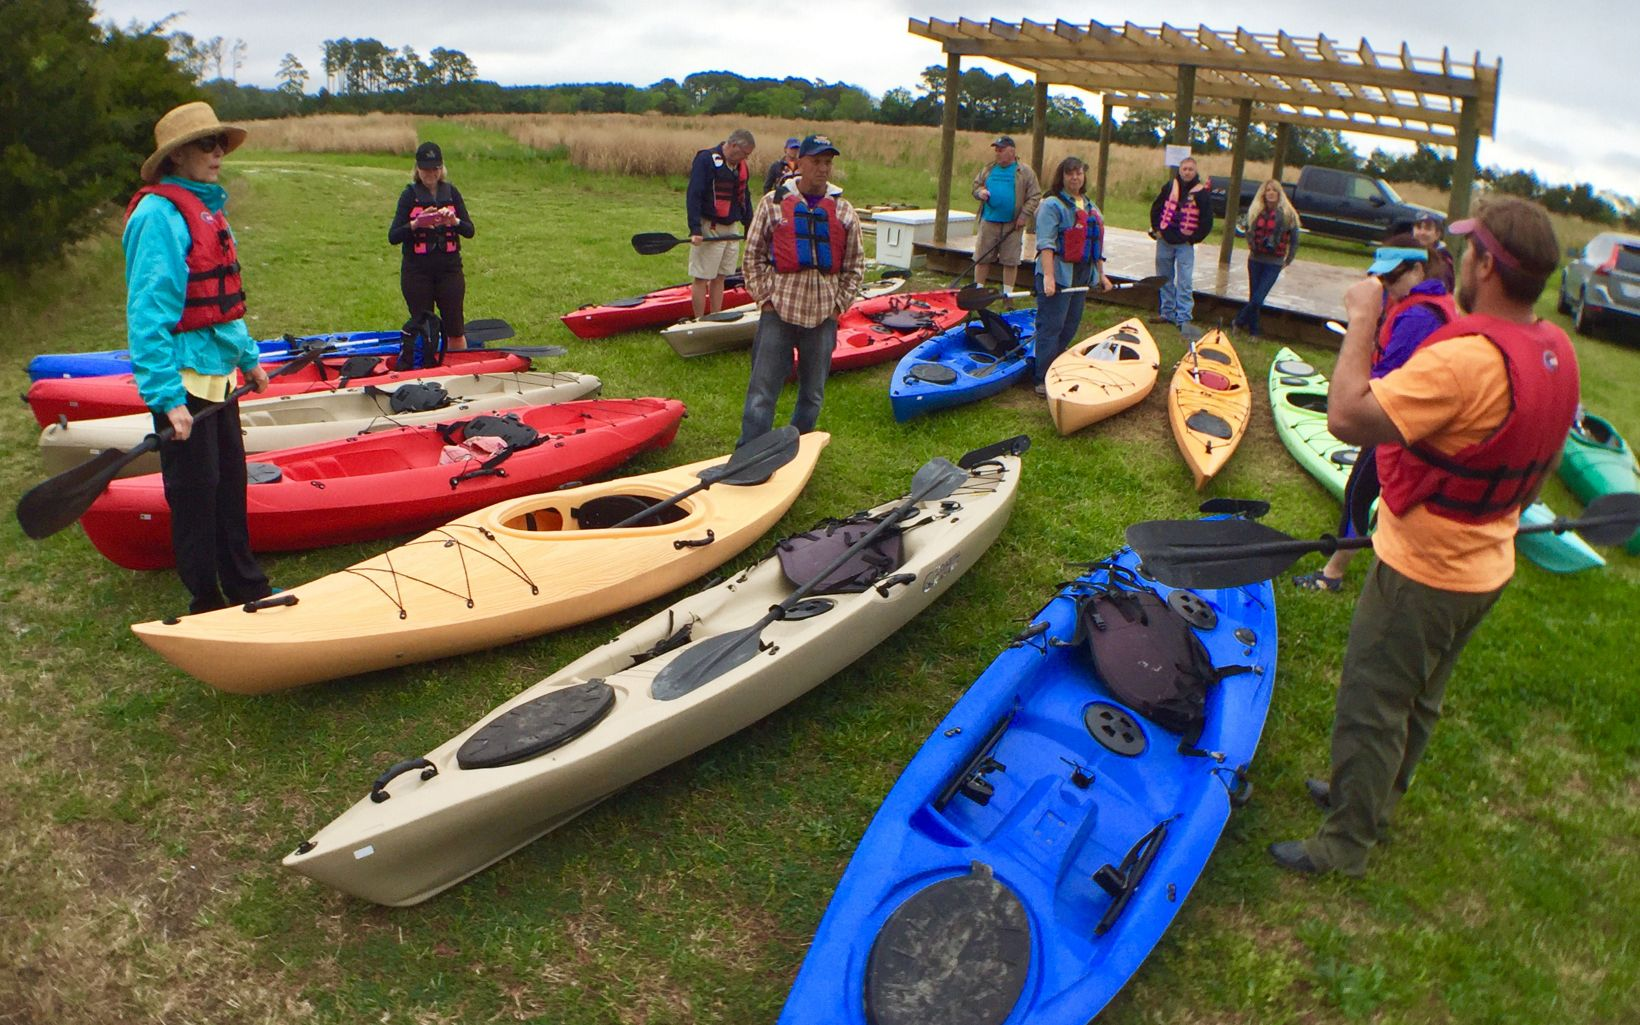 A group of about 10 people stand around two rows of colorful kayaks.